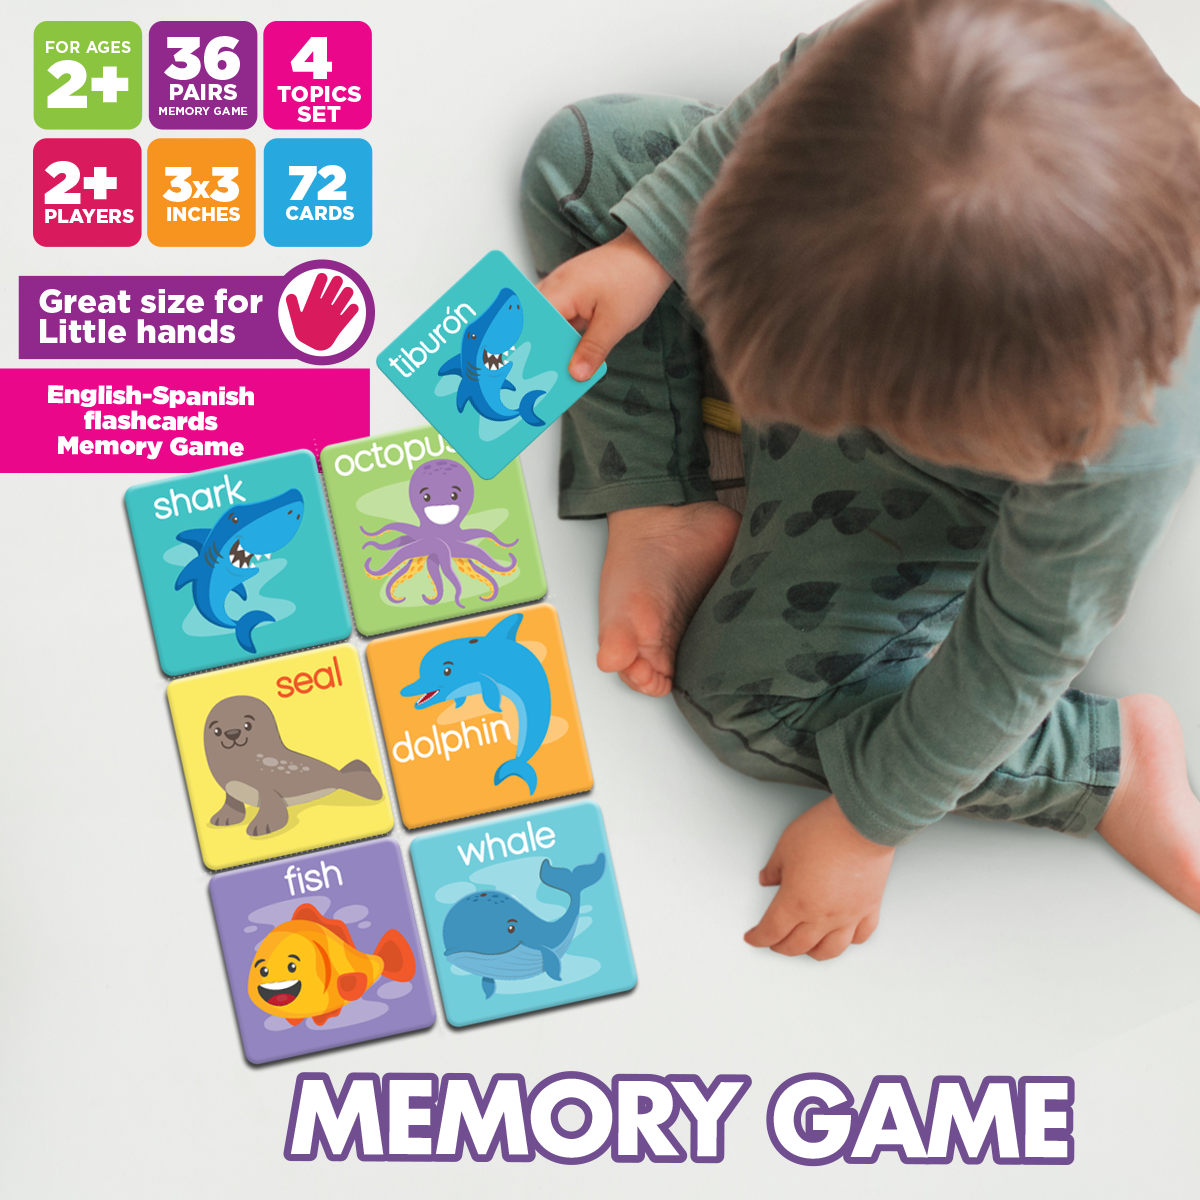 Memory Game by Oook! Learning Supplies | Inspire Me Latin America